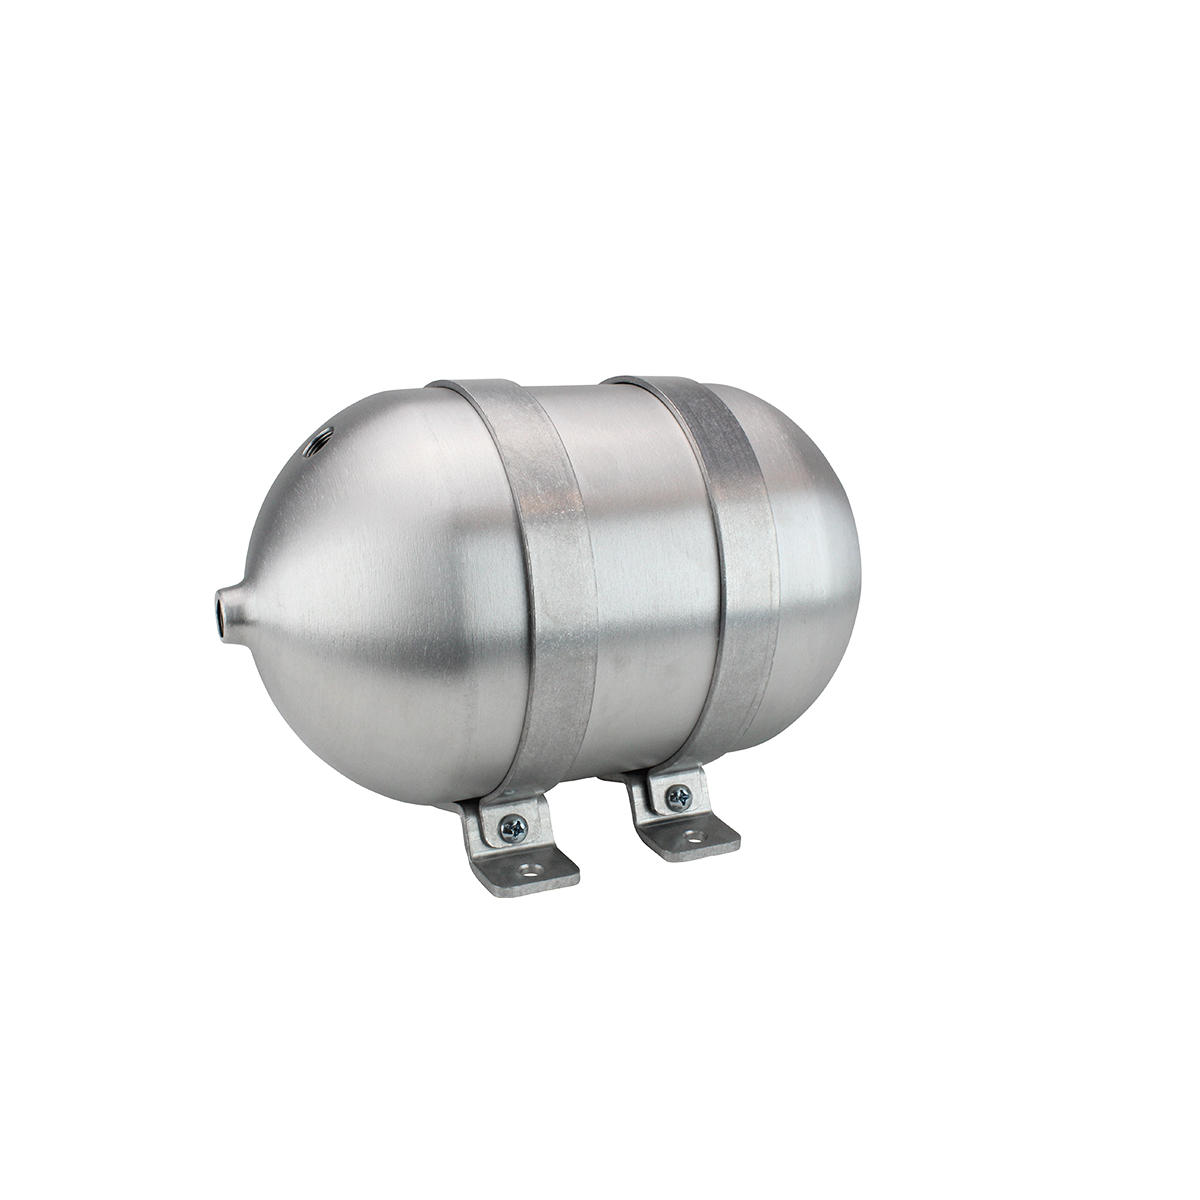 "SA612038-01 Seamless Tanks Aluminum Air Tank 12"" Length 6.625"" Diameter, (4) 3/8"" Ports (1) 1/4"" Port, 200psi Rated, Actual Volume 1.25 Gallons"